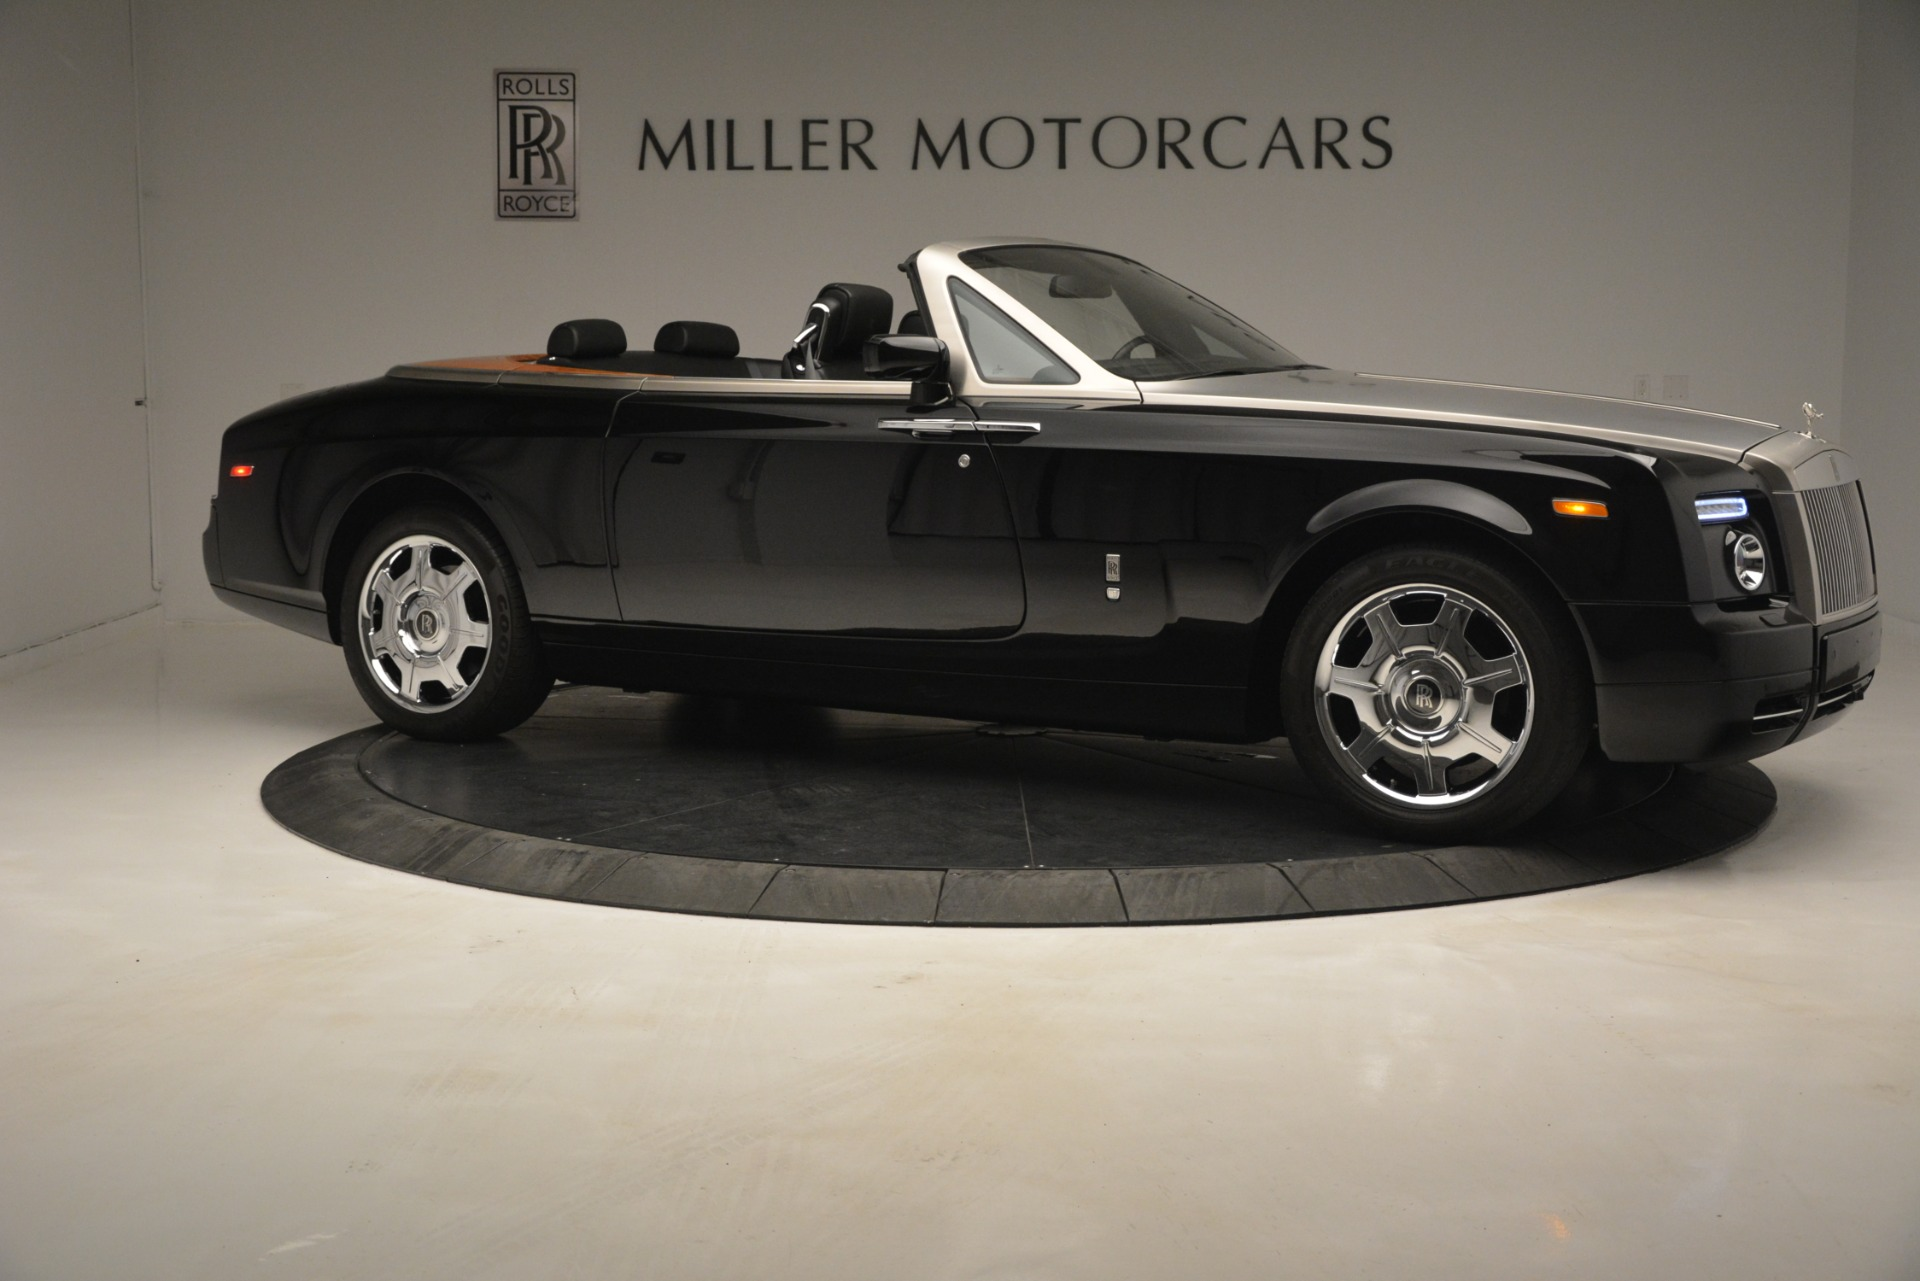 Used 2008 Rolls-Royce Phantom Drophead Coupe  For Sale In Greenwich, CT 3000_p14